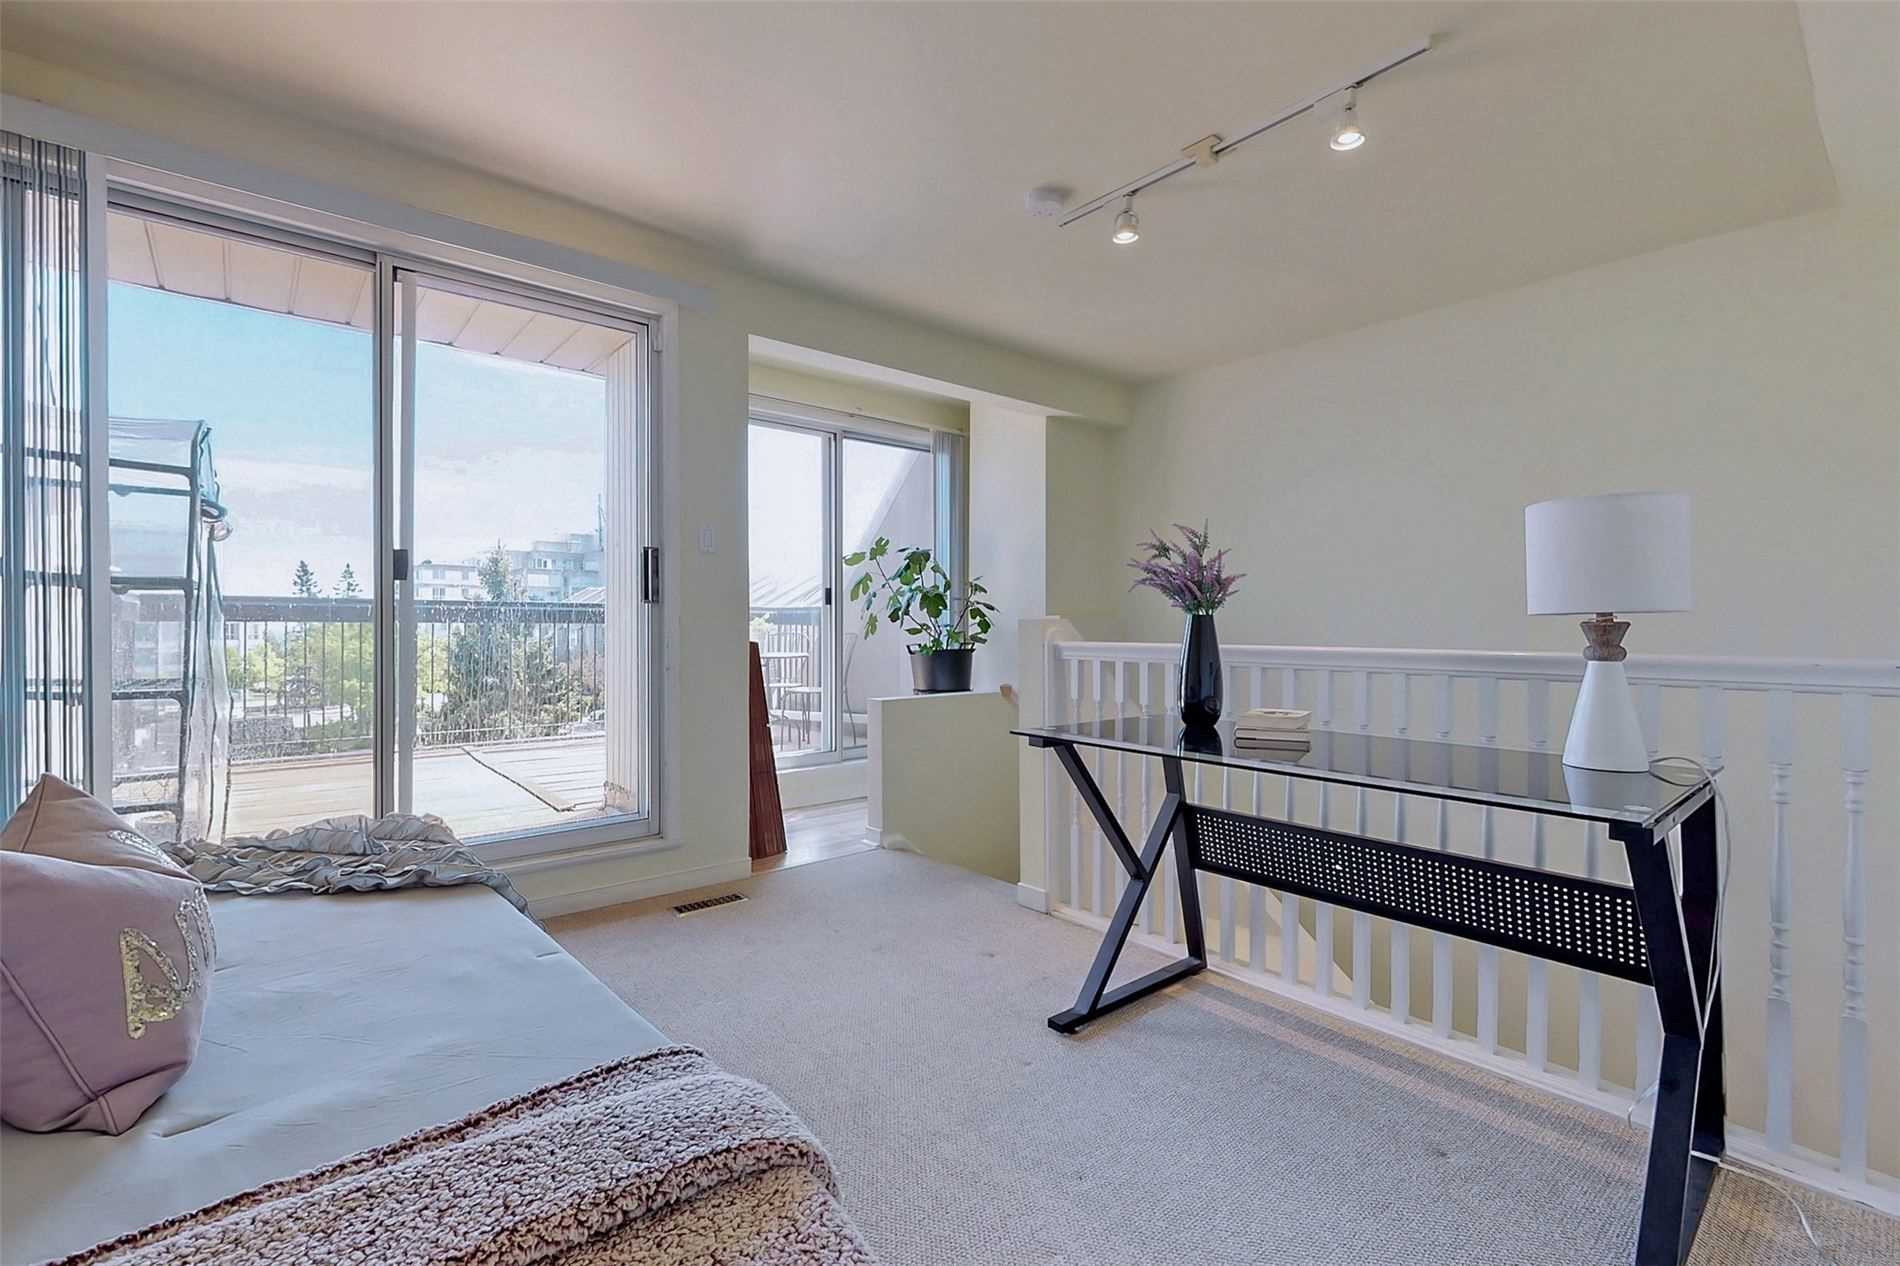 Image 32 of 40 showing inside of 3 Bedroom Condo Townhouse 3-Storey for Sale at 14 Cumberland Lane Unit# 7, Ajax L1S7K4